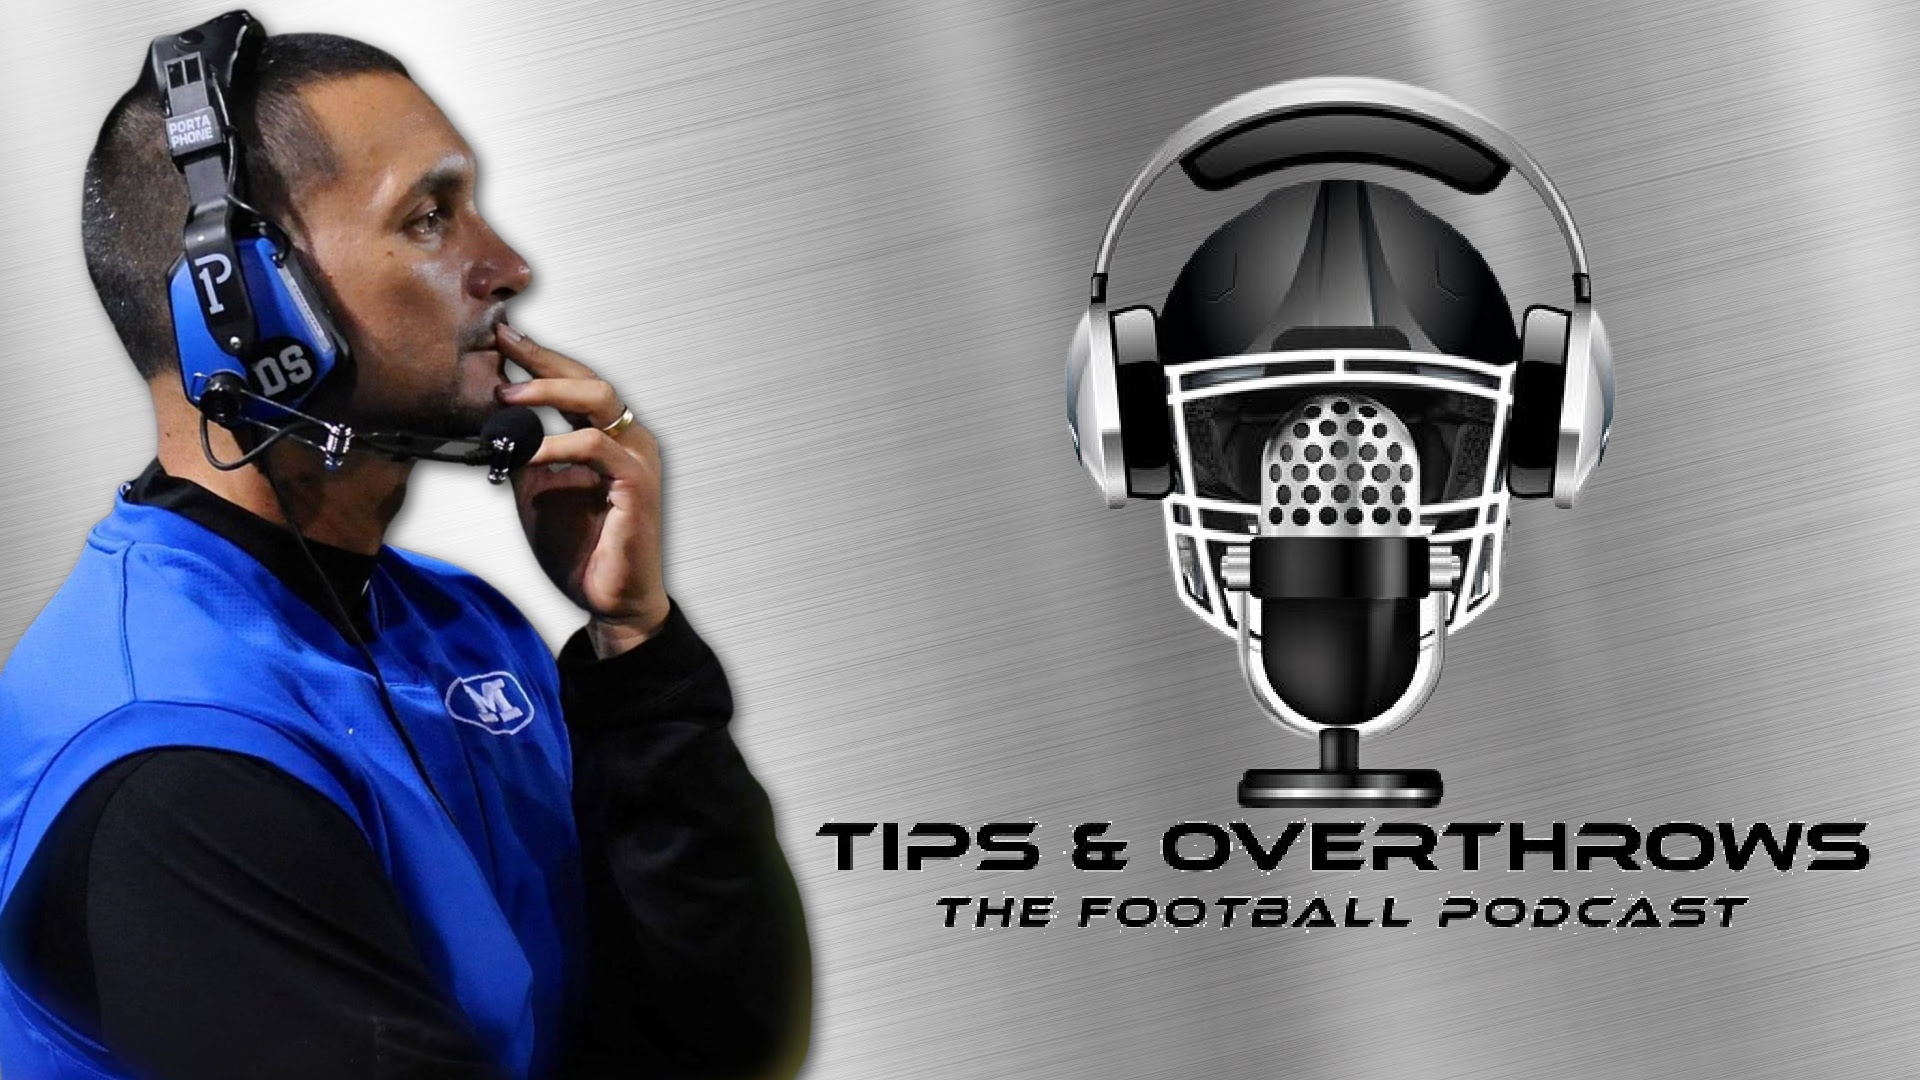 Tips & Overthrows – The Football Podcast